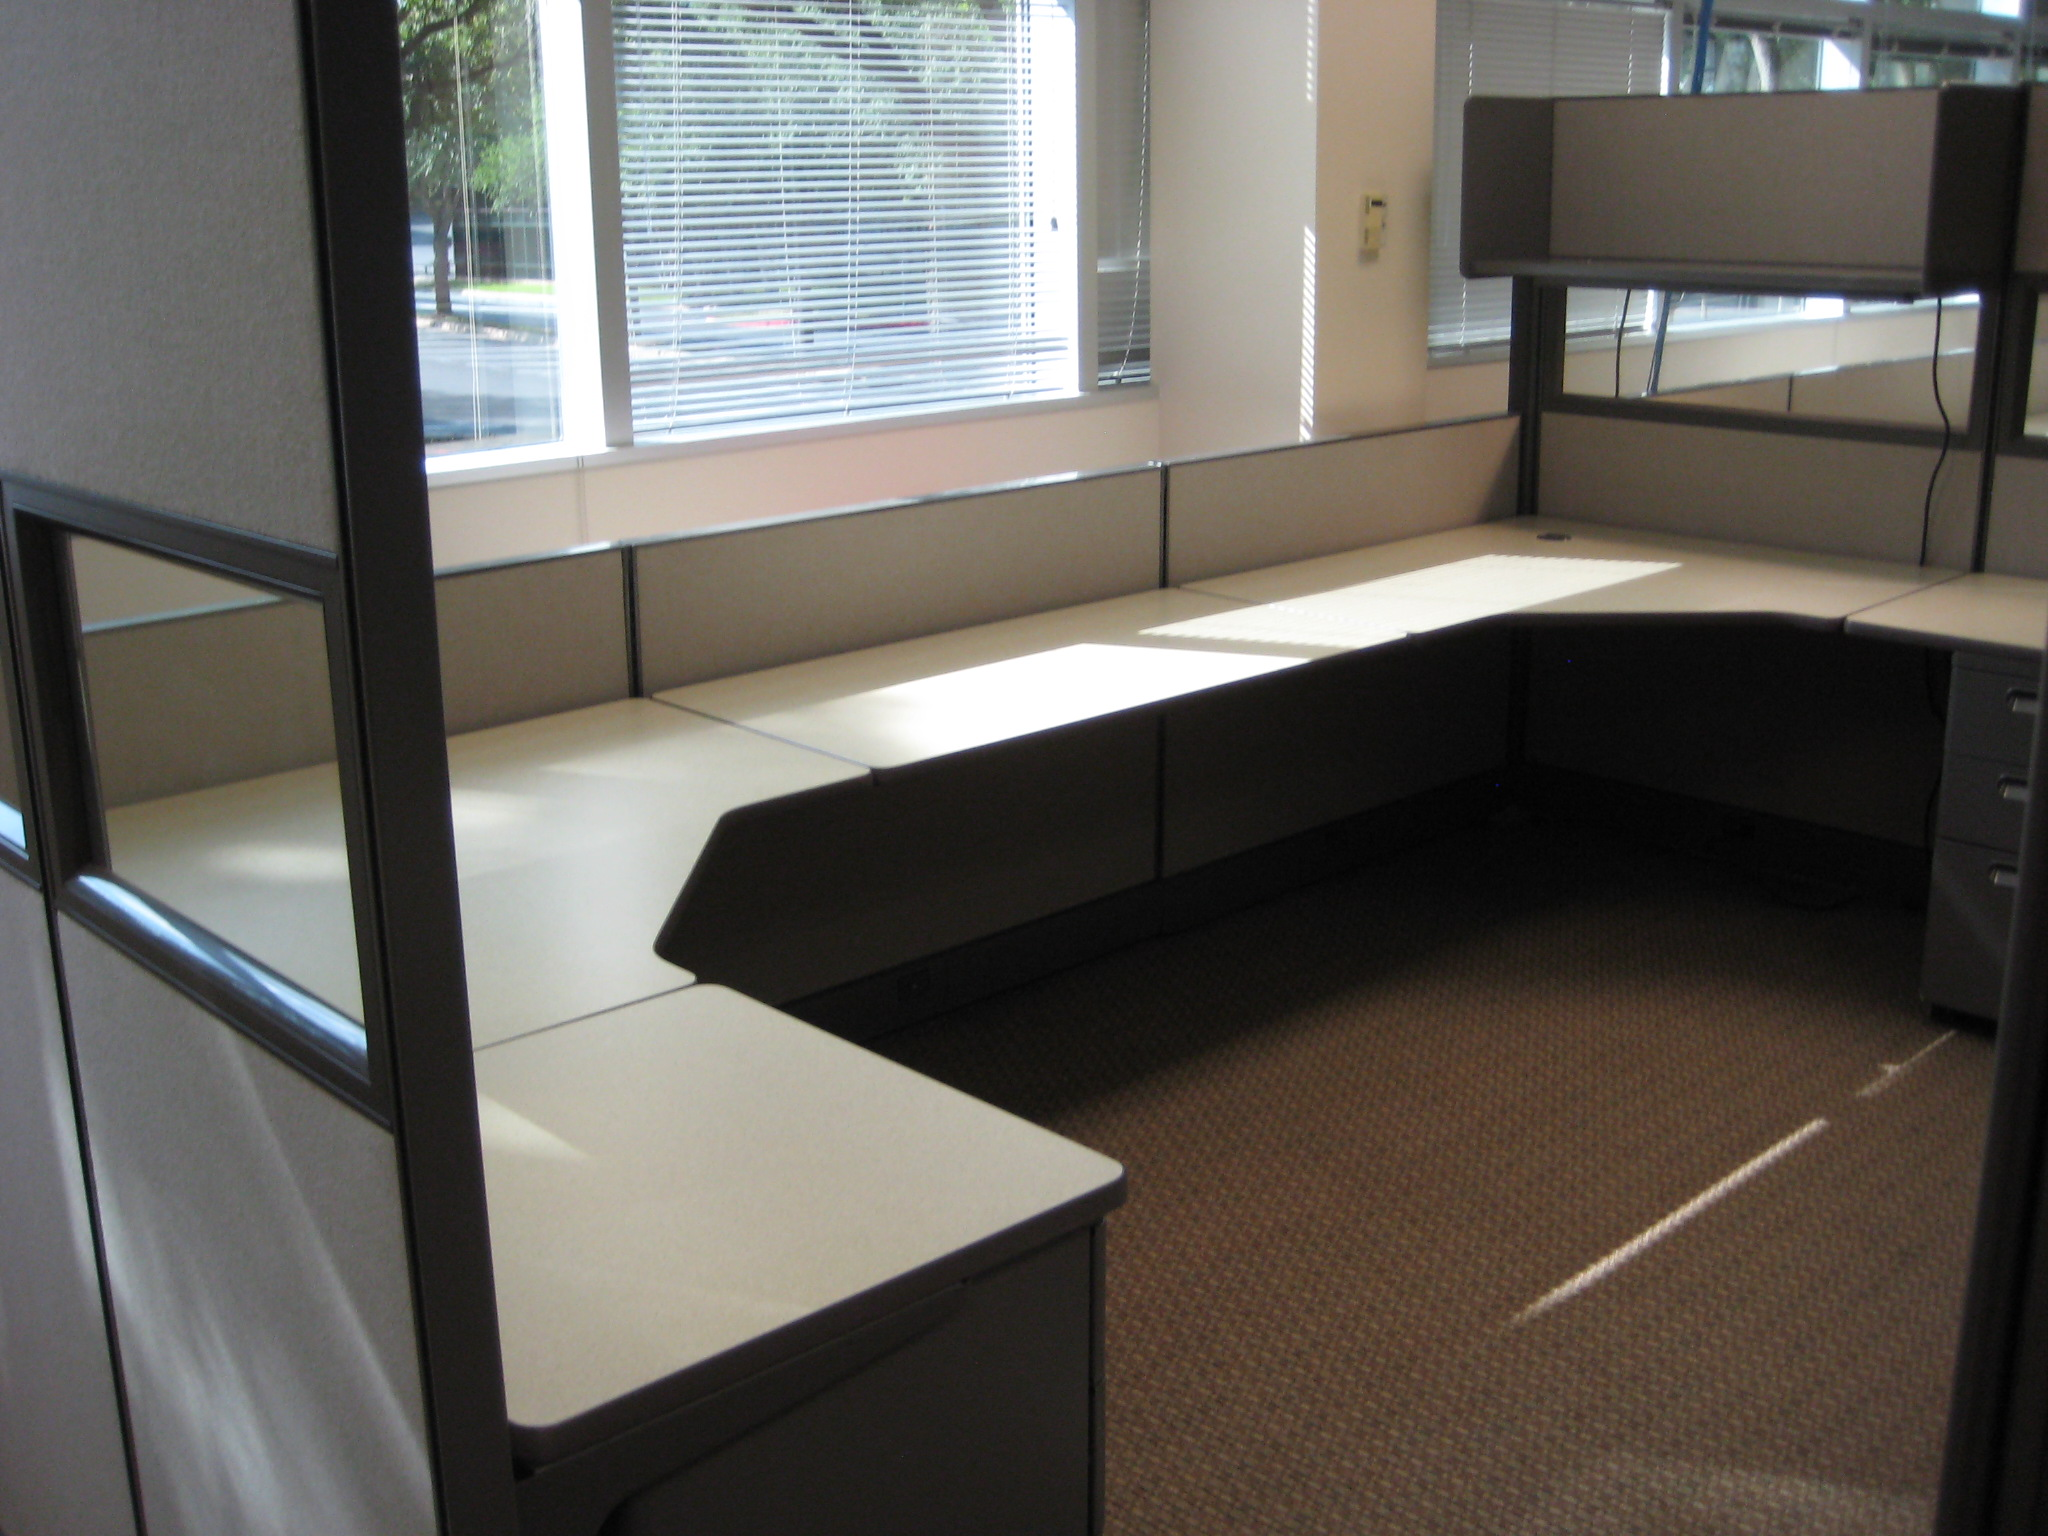 Merveilleux 6u0027X6u0027 Shared Bullpen Used Grey Fabric Cubicle Set Up With 1 Open Shelf With  Light, 1 BBF Or Box Box File Cabinet, And A Window Panel Insert To Let  Light ...